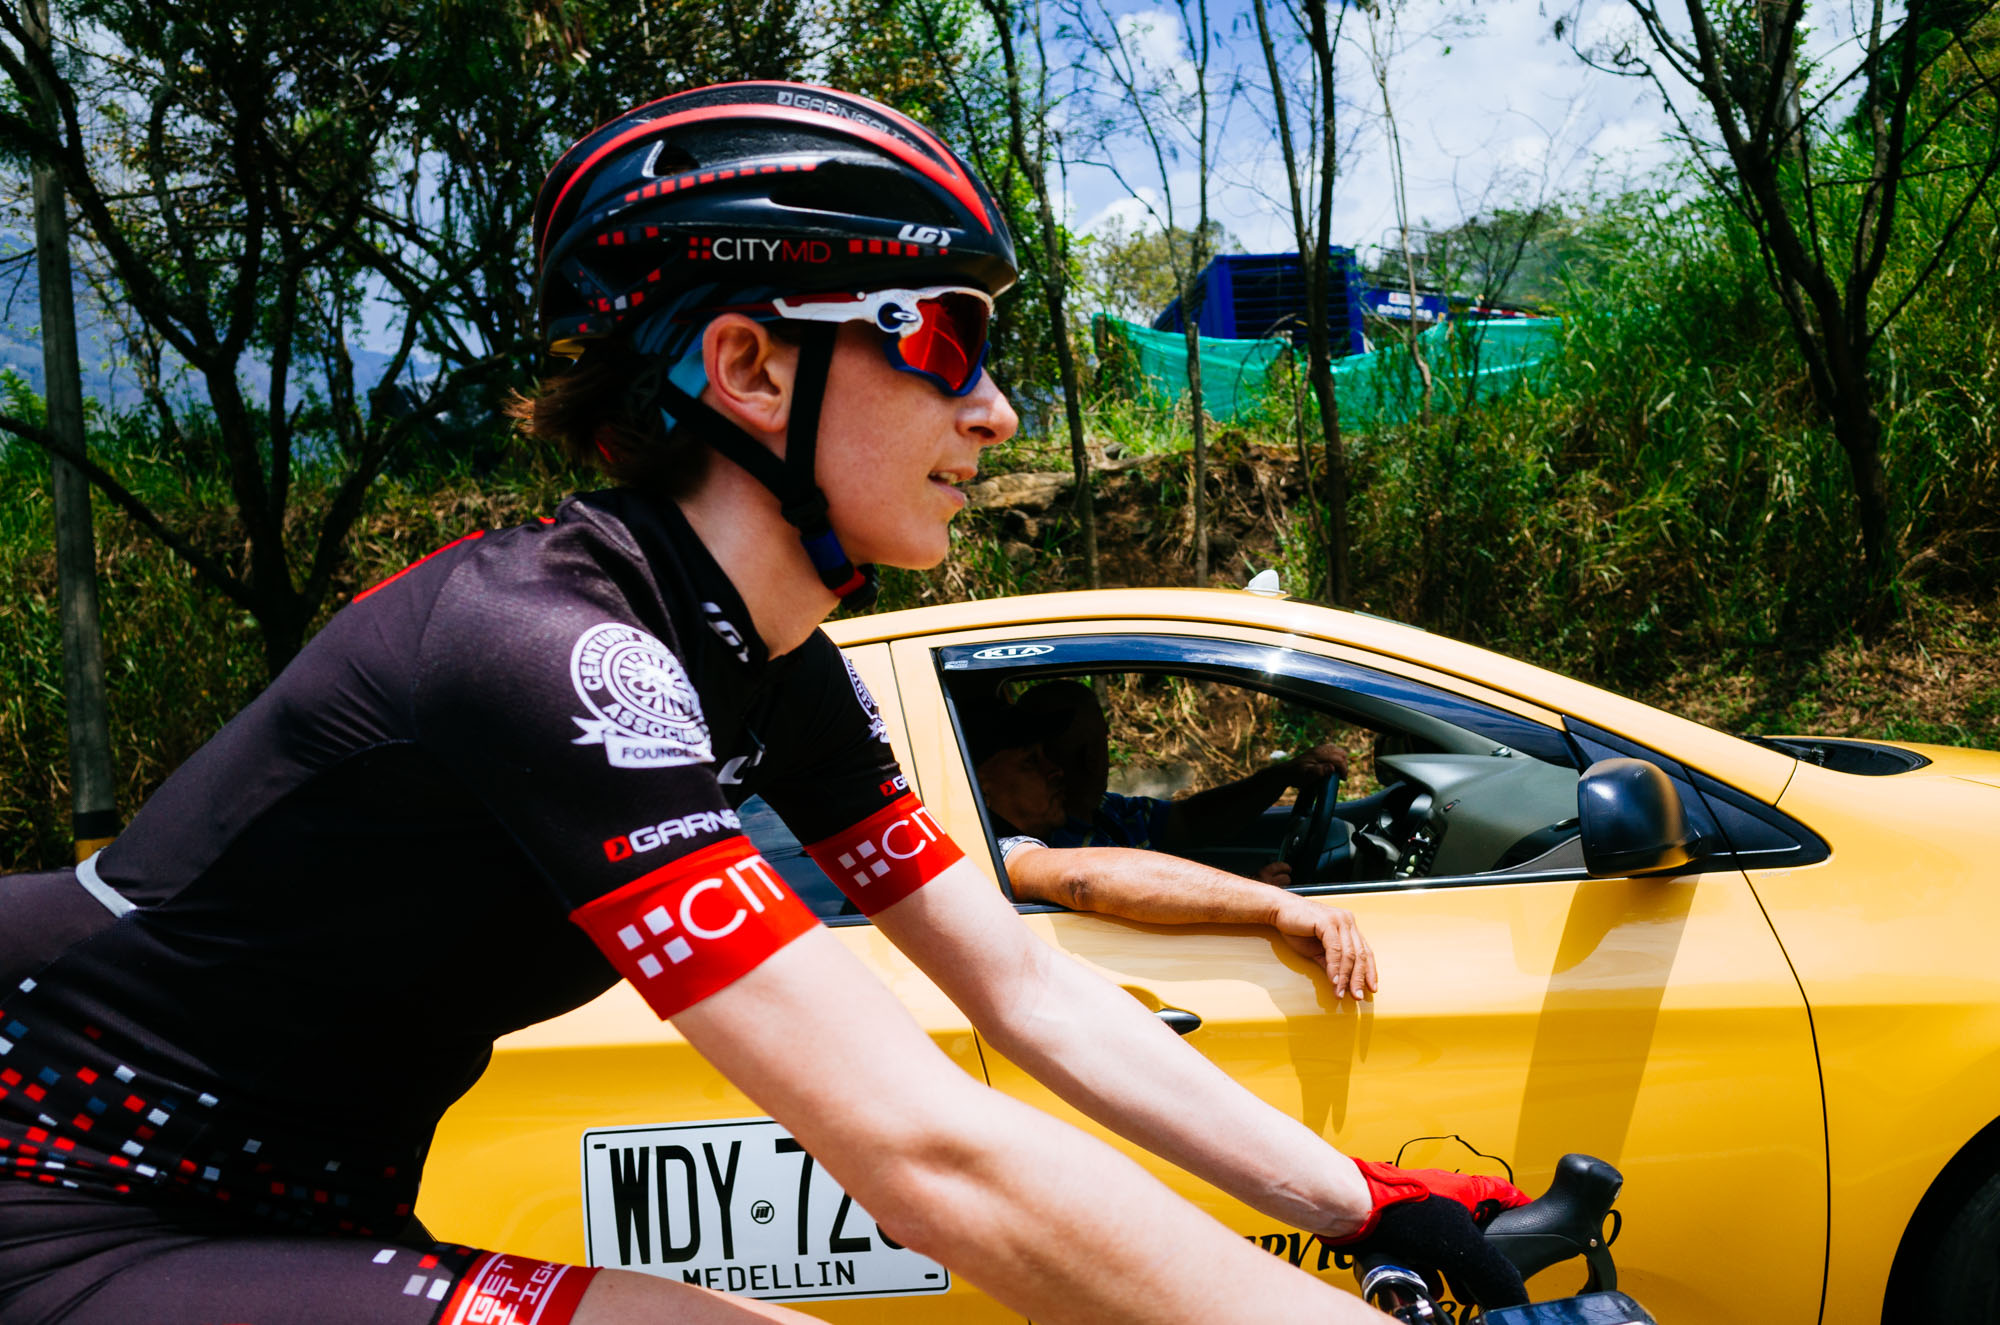 to-be-determined-photo-rhetoric-cycling-in-colombia-1012.jpg